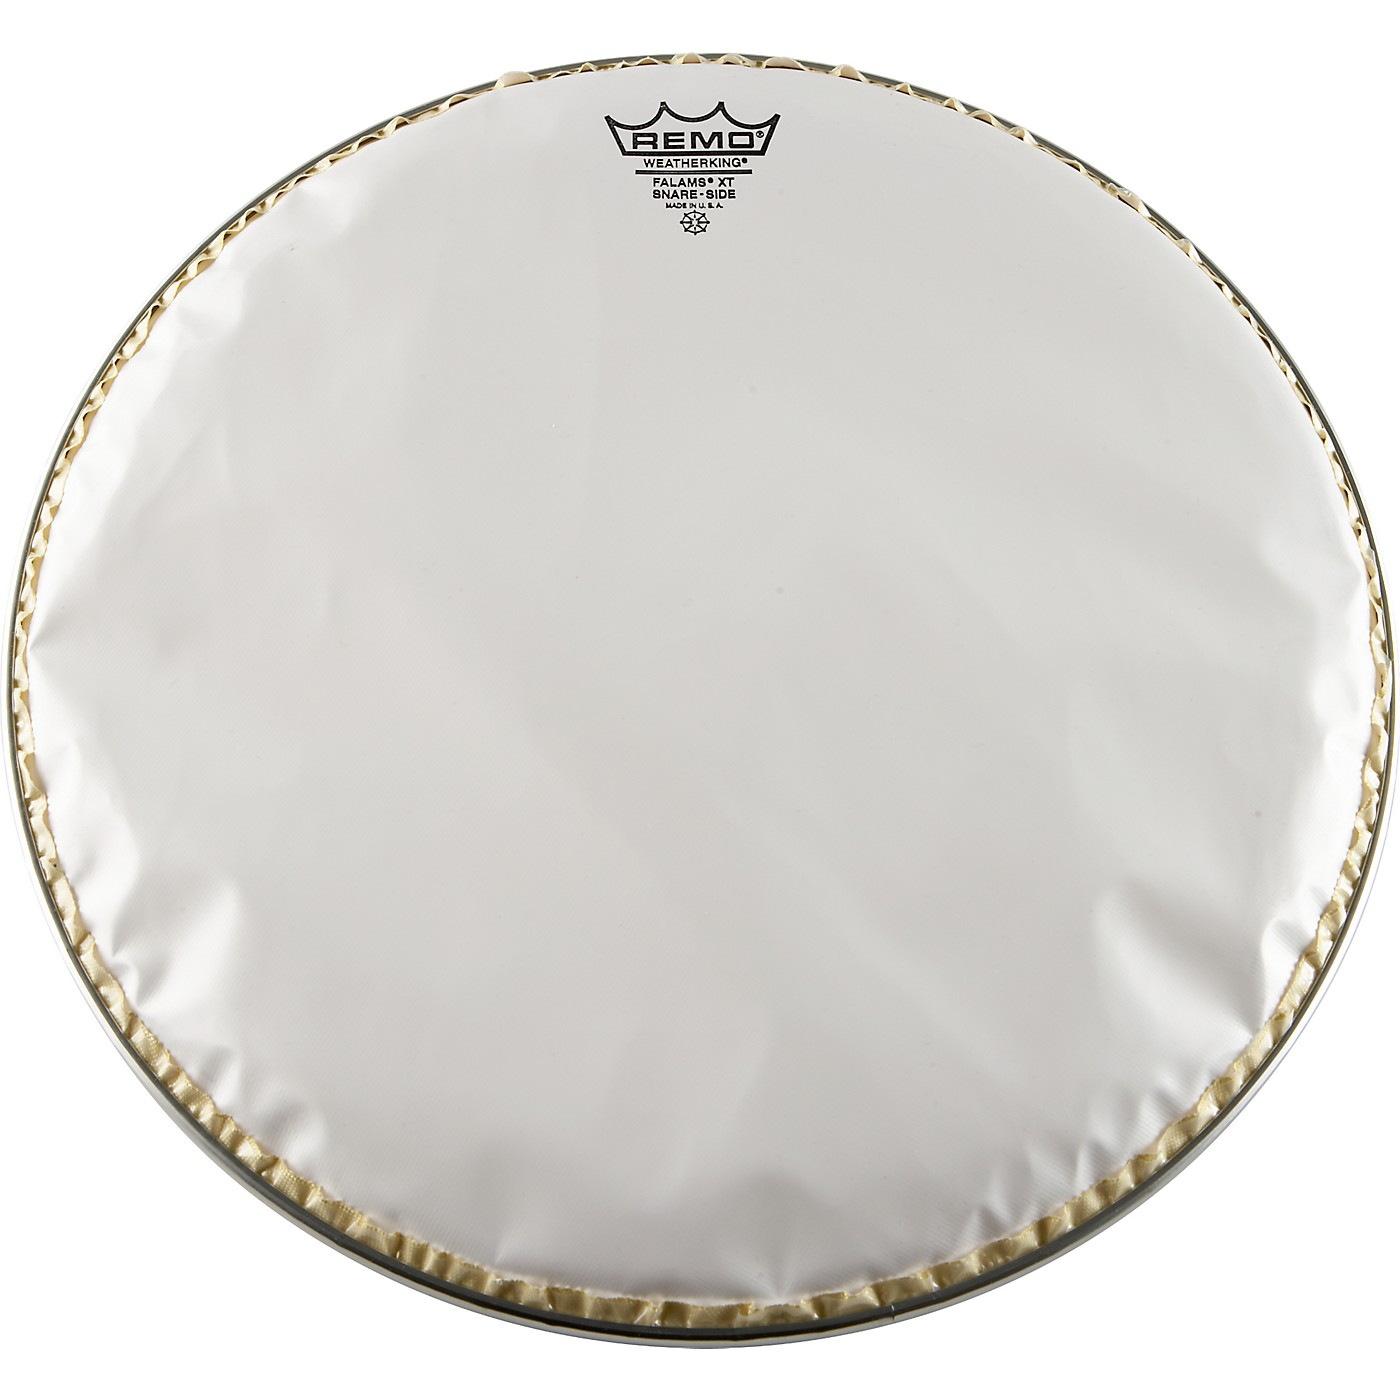 Remo Falams XT Crimped Snare Side Drum Head thumbnail